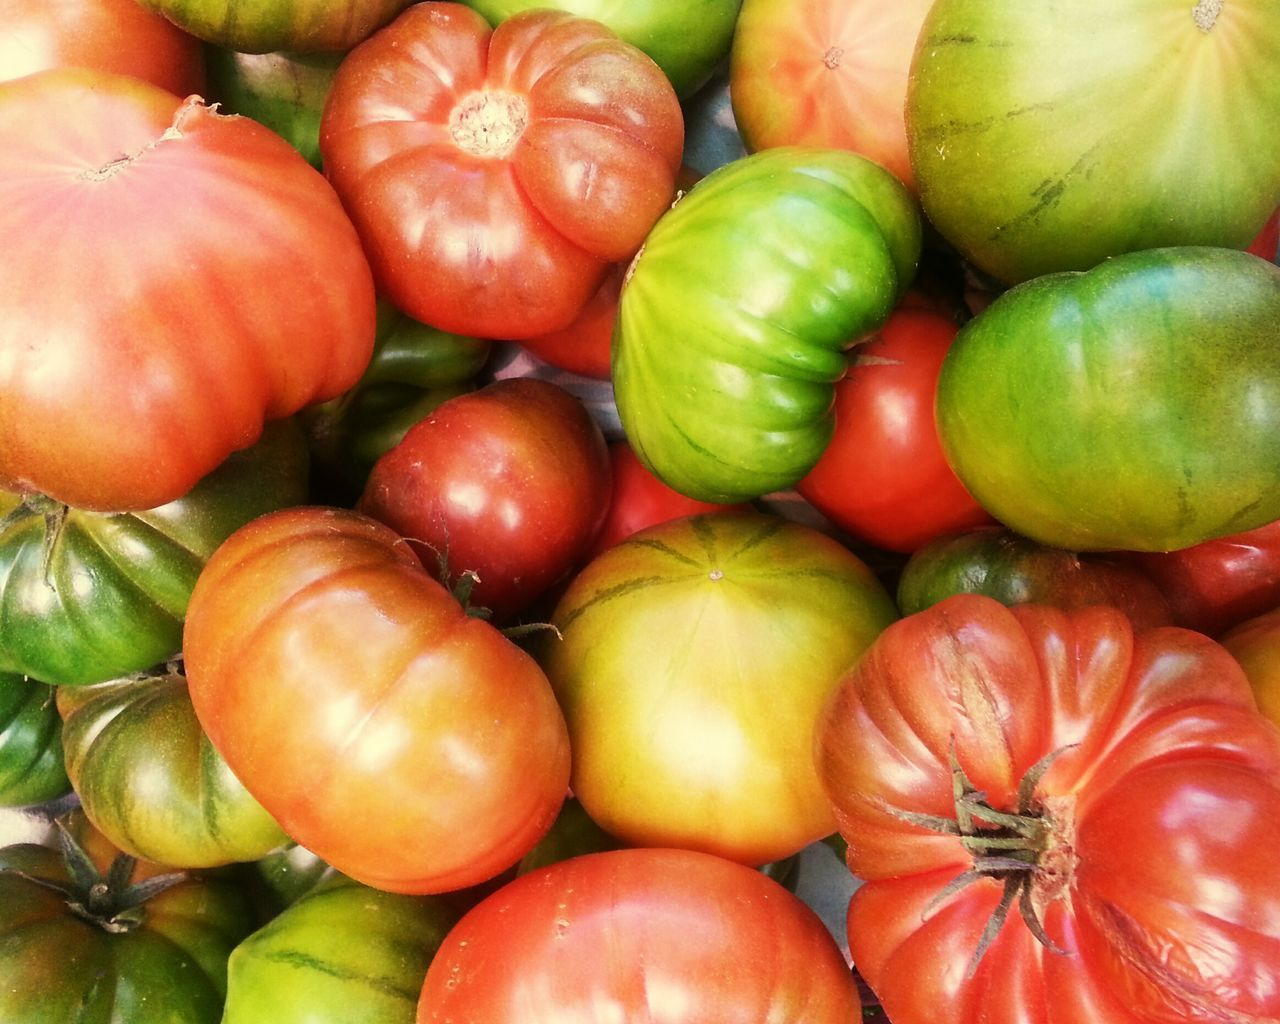 Ecologic tomatos Food Healthy Eating Food And Drink Freshness Fruit Abundance Green Color No People Large Group Of Objects Full Frame Close-up Market Backgrounds Outdoors Day Ecologic Ecologic Food Tomato Tomatoes Red Tomato Red Tomatoes Green Tomatoes Green Tomato Tomate Tomates